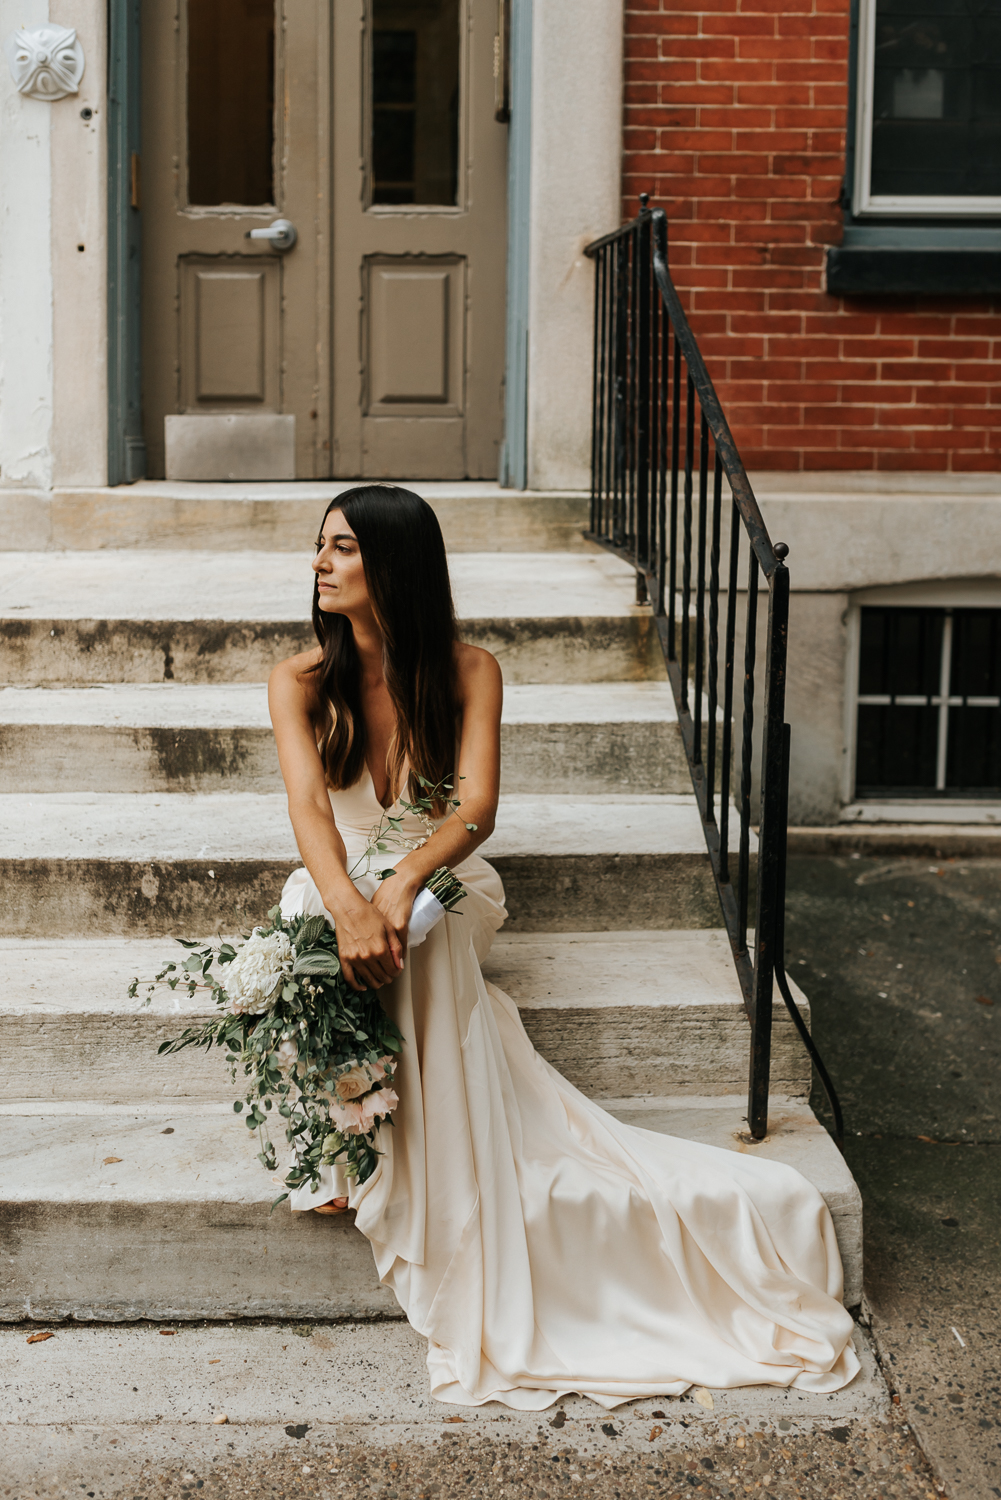 Center City Philly Elopement The Bride